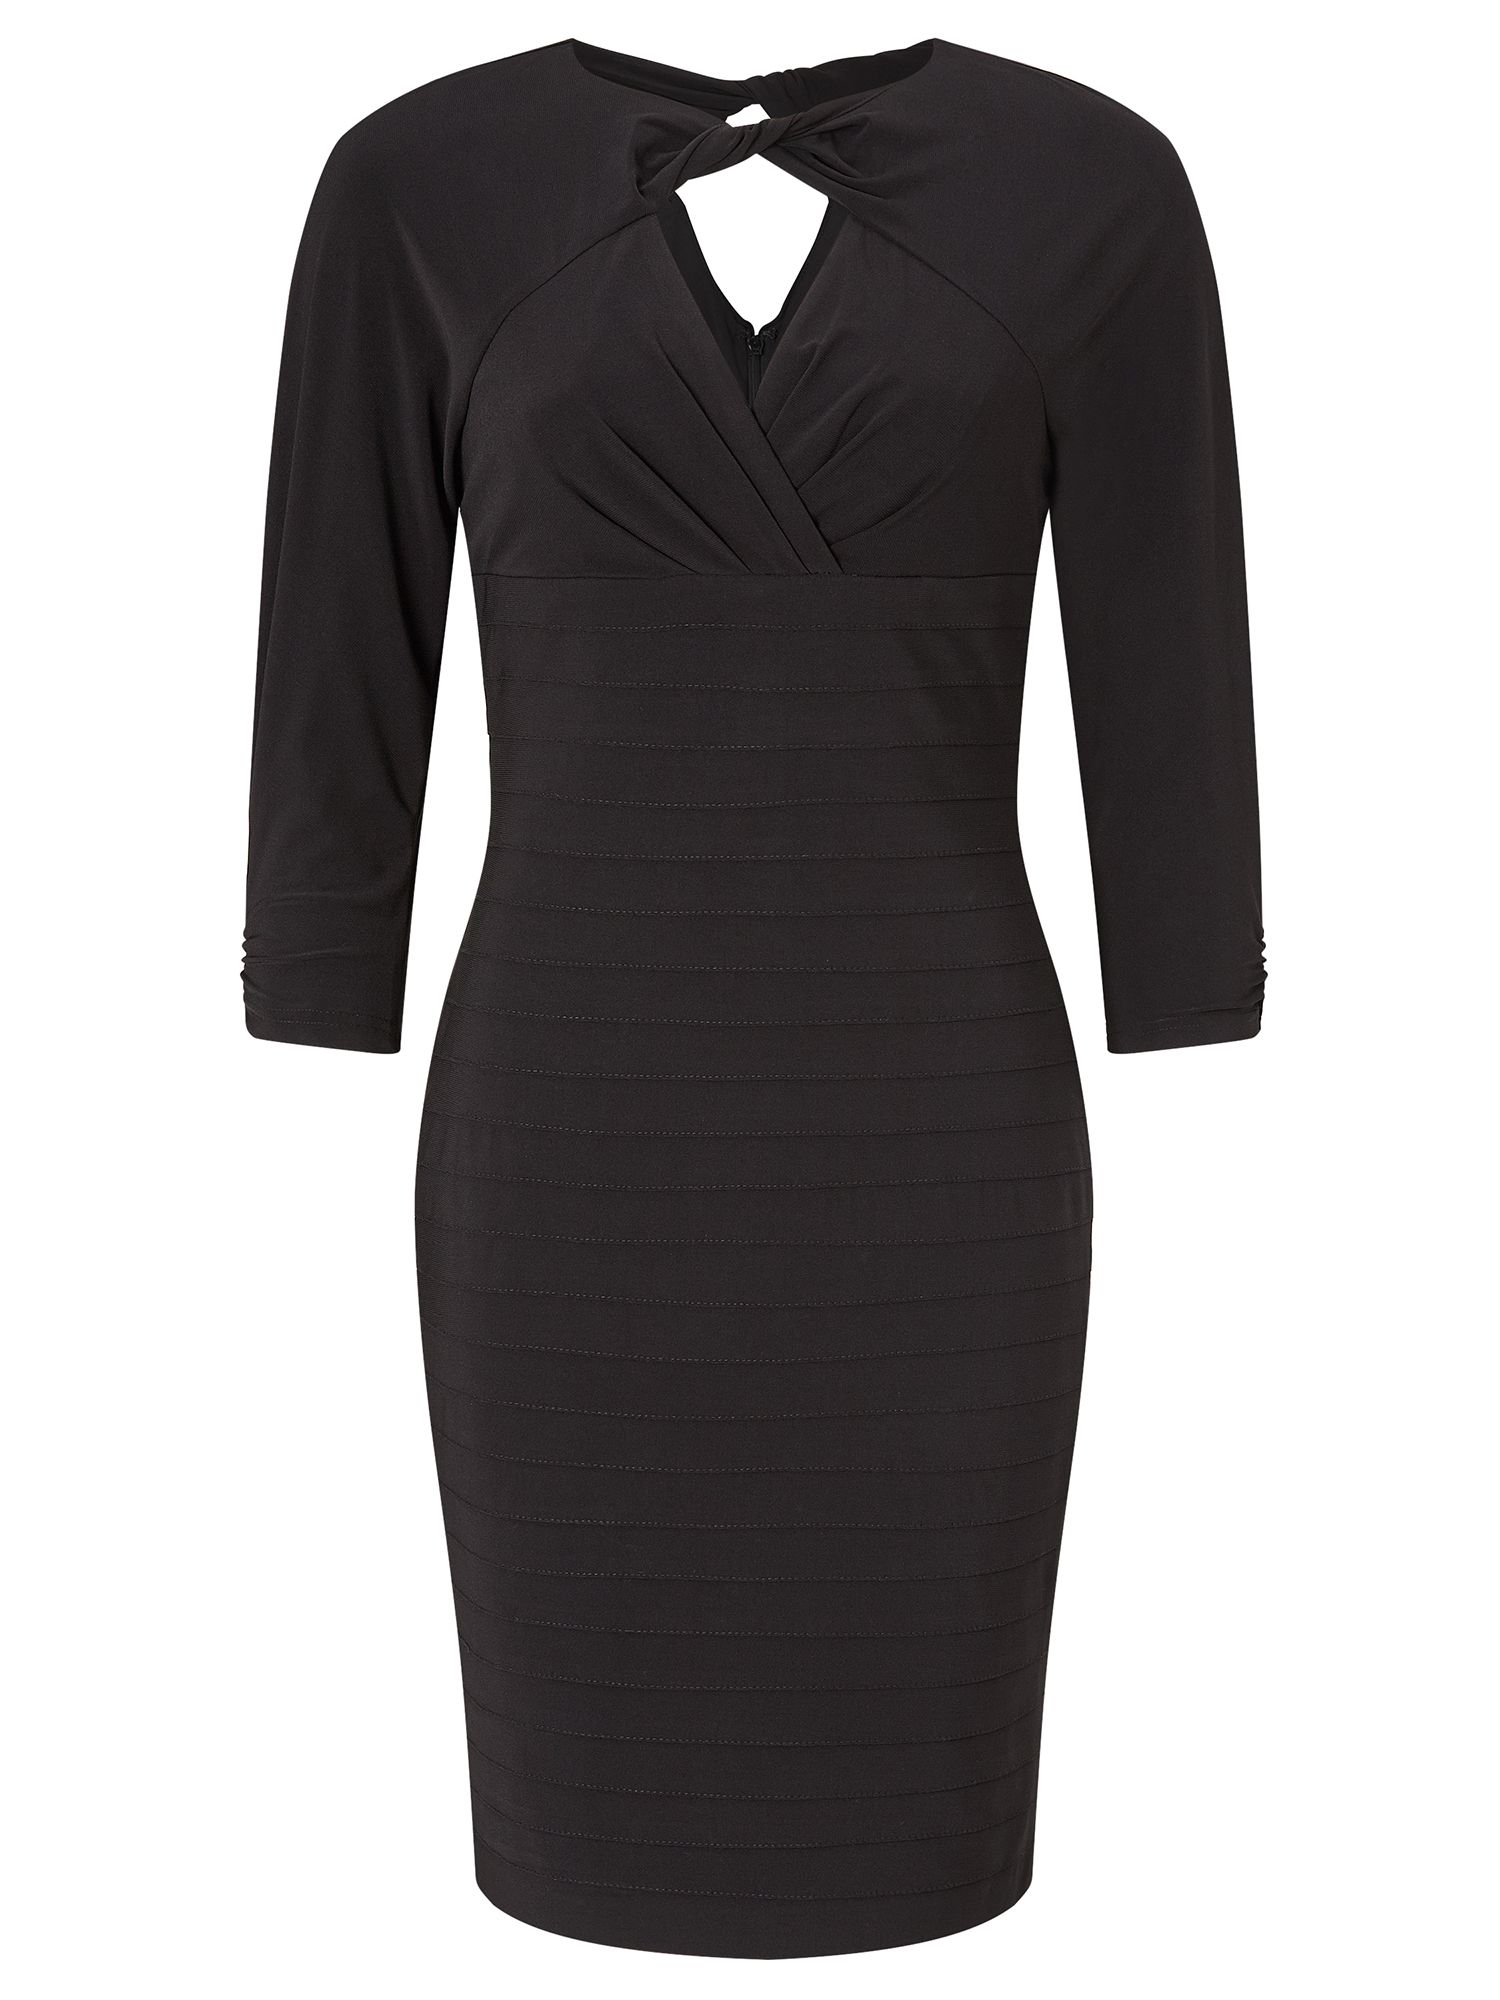 Adrianna Papell Long sleeve twisted neckline sheath dress, Black